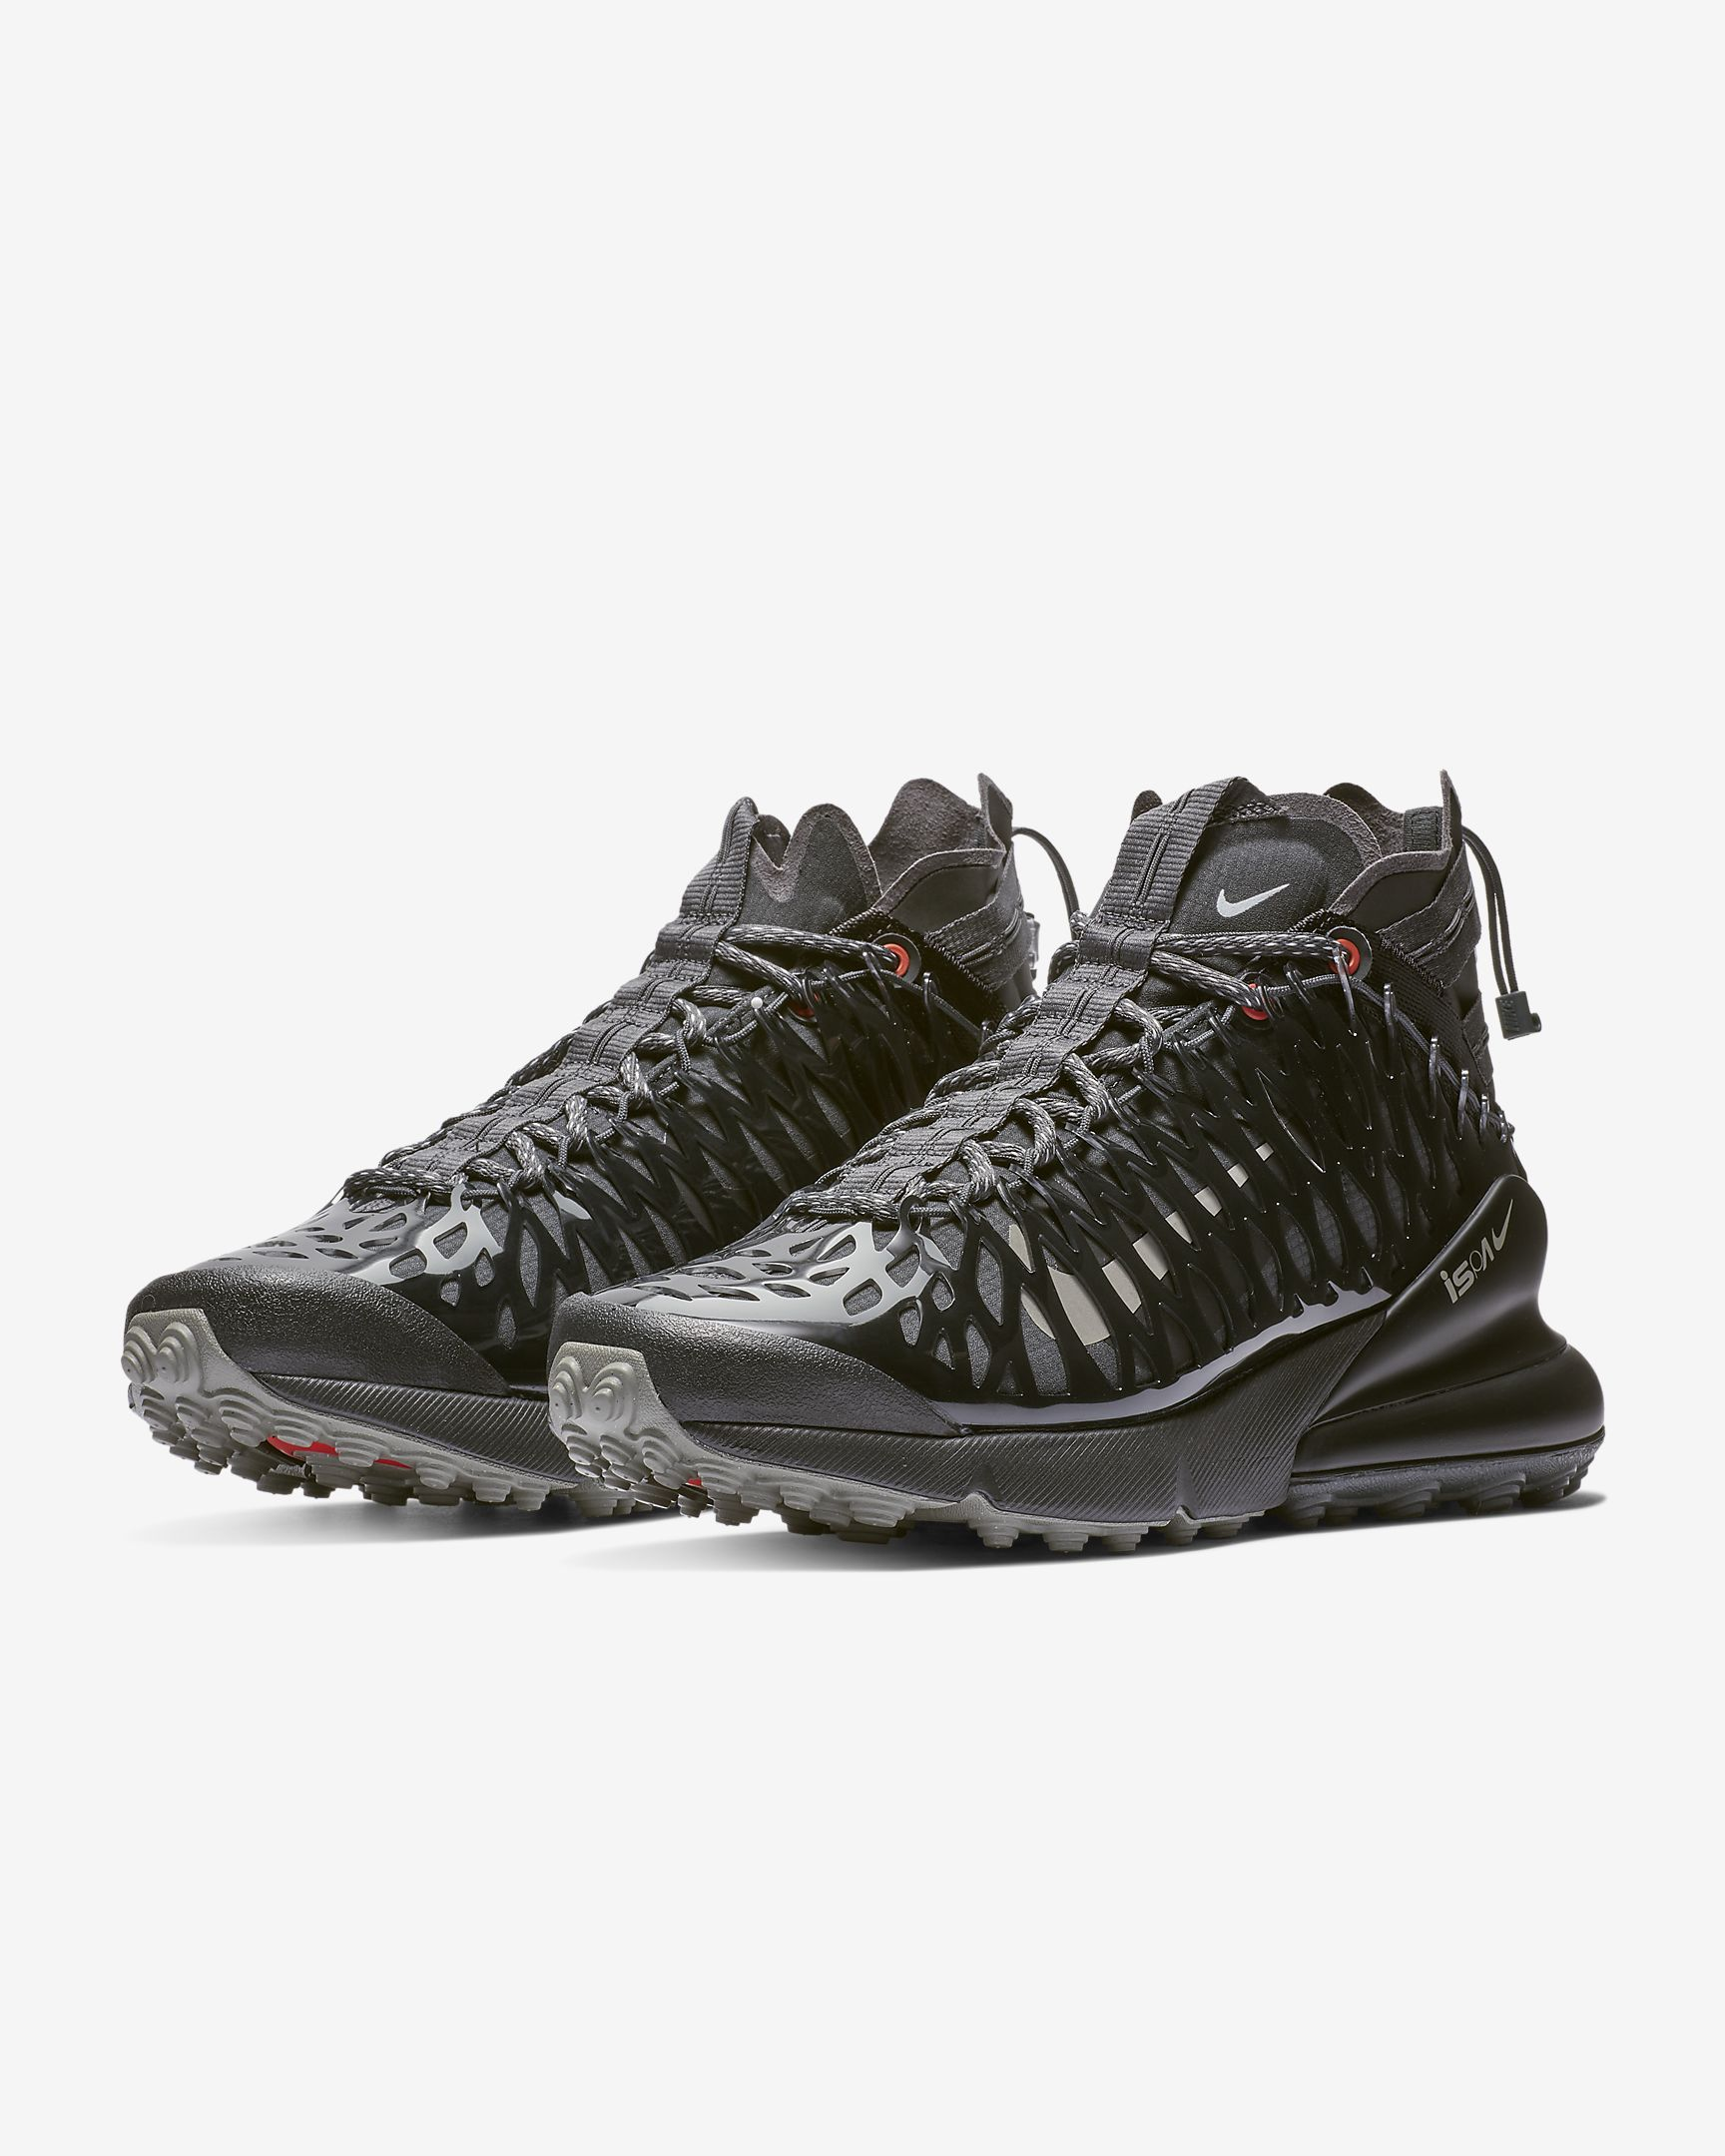 purchase cheap 37cc1 c581d Discover ideas about Nike Acg Boots. Nikes Air Max Foamdome Returns to  Boost the Foamposites Anniversary